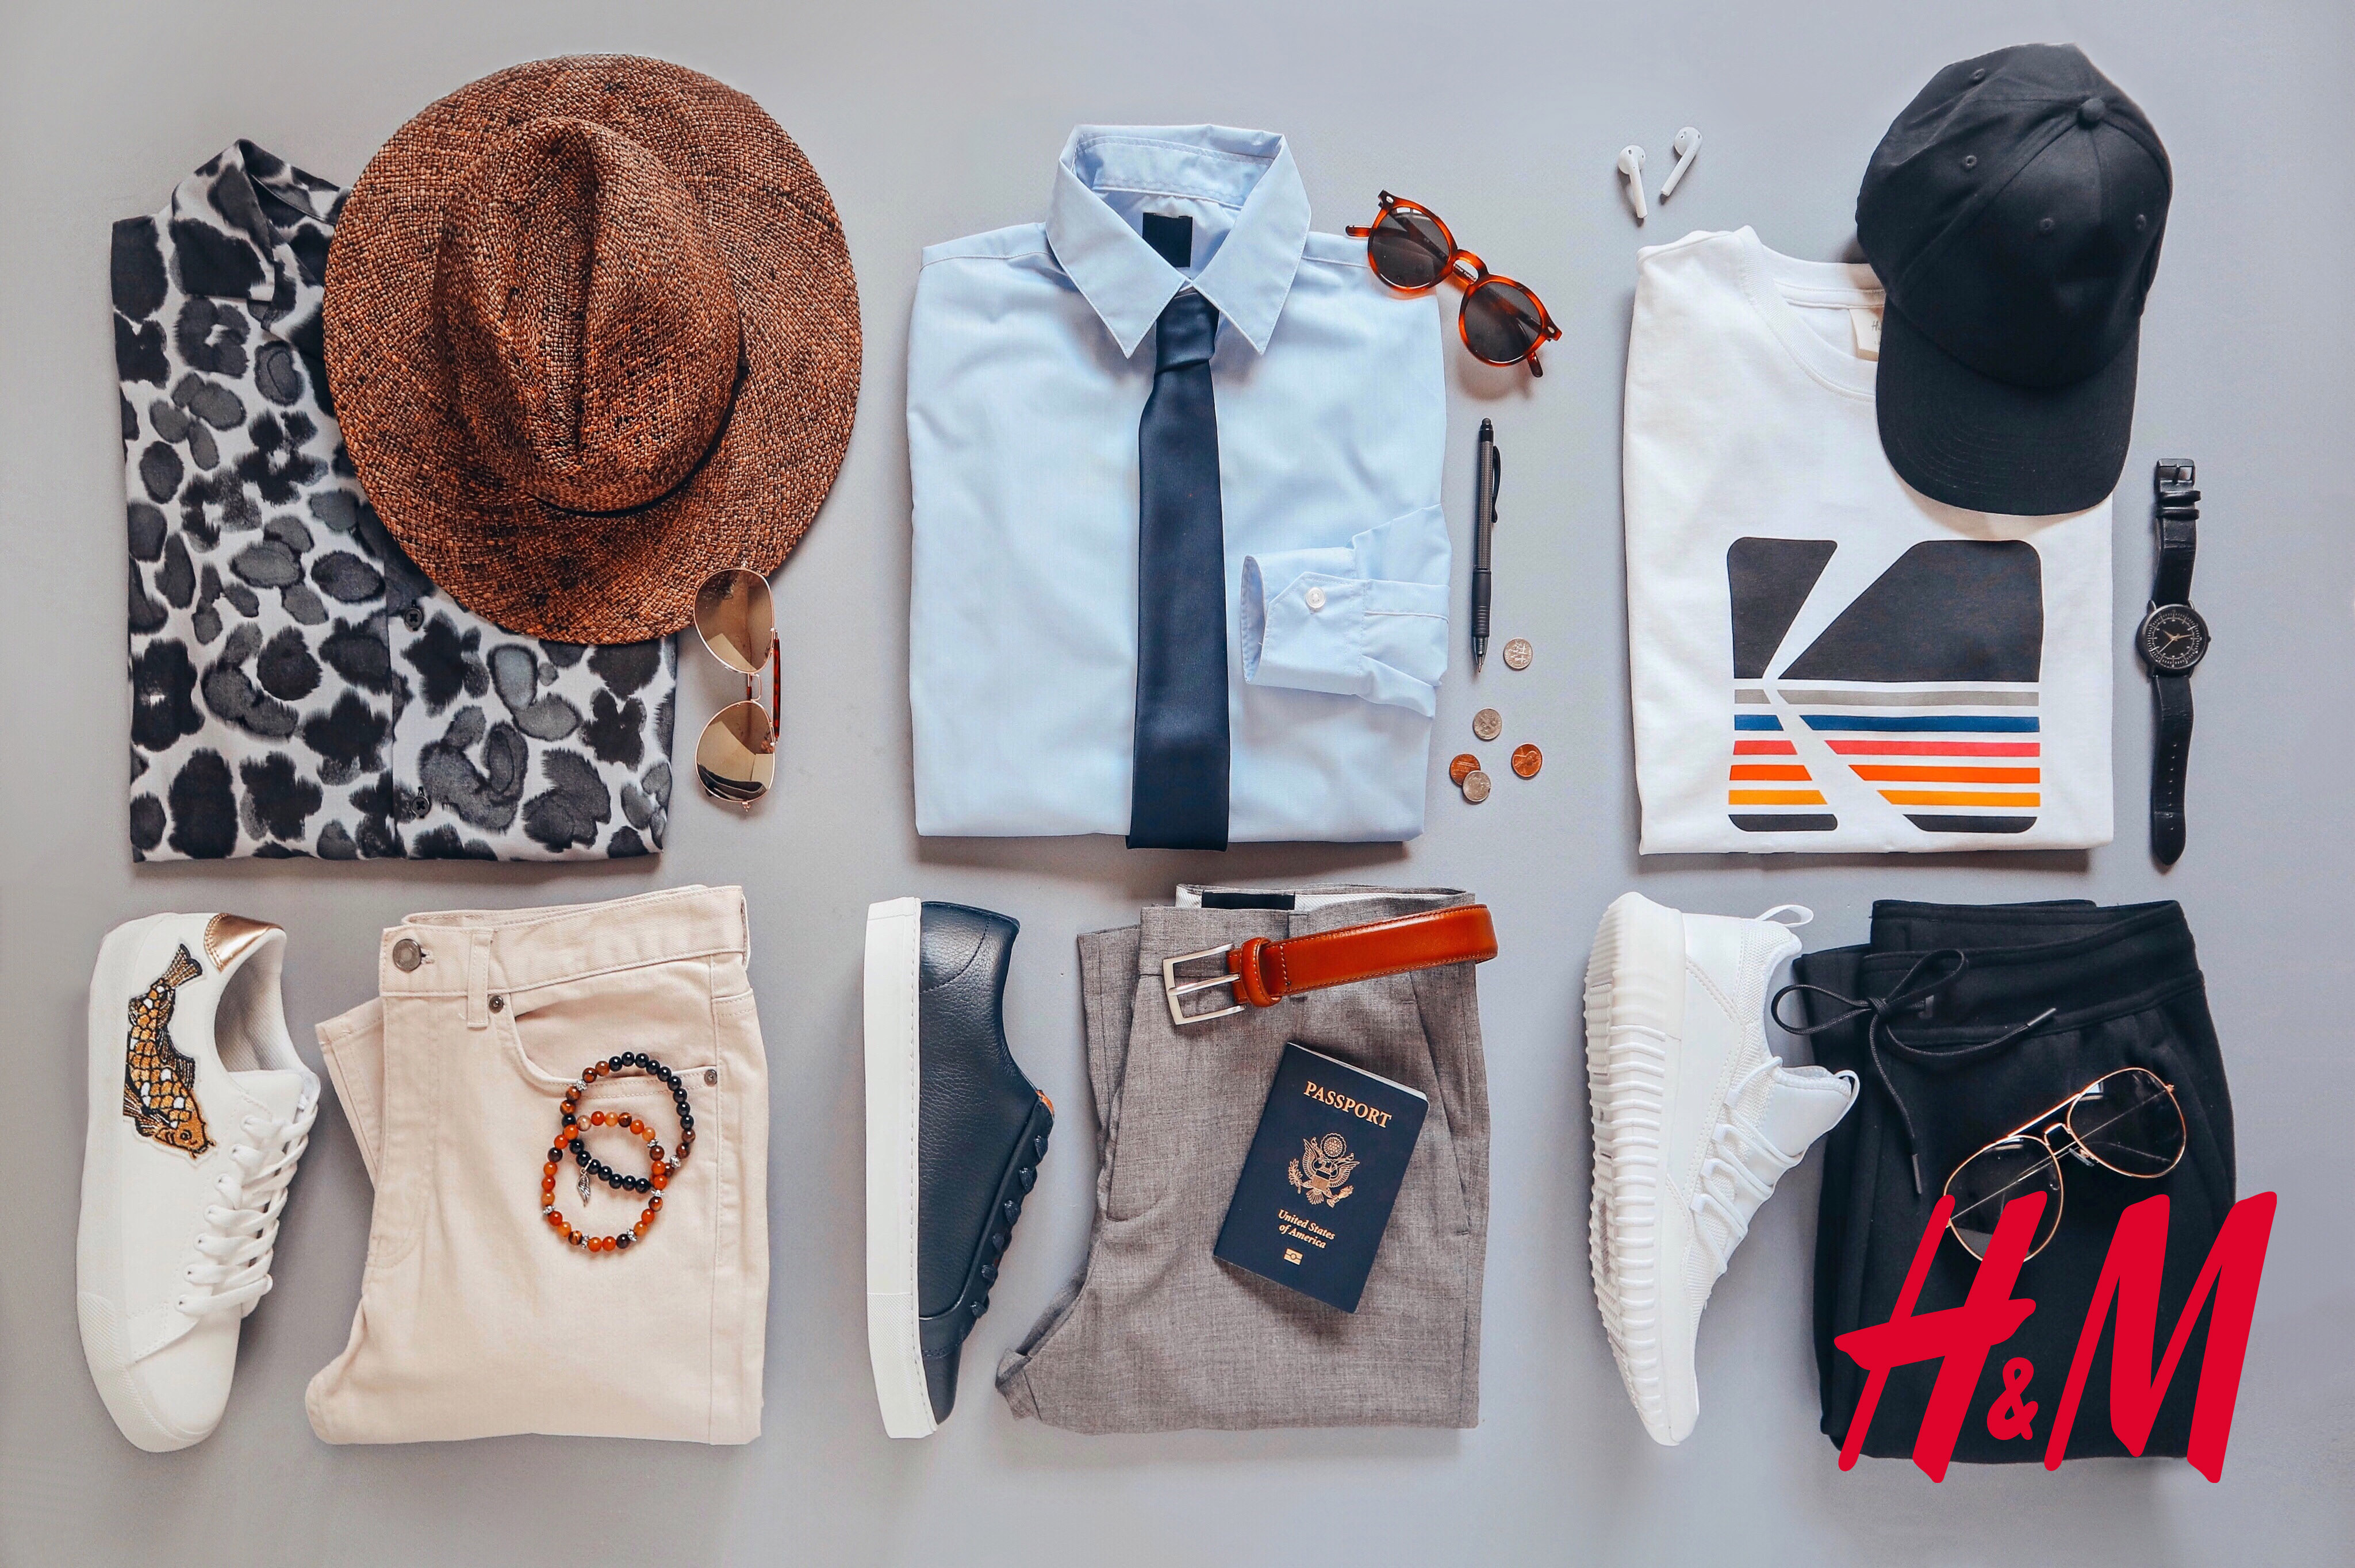 Shown, selection of men's clothing sorted by stylish, sporty and business looks.  Includes, shirts, shoes, pants, sunglasses, belt, watch, airpods, pen, loose change, and passport.